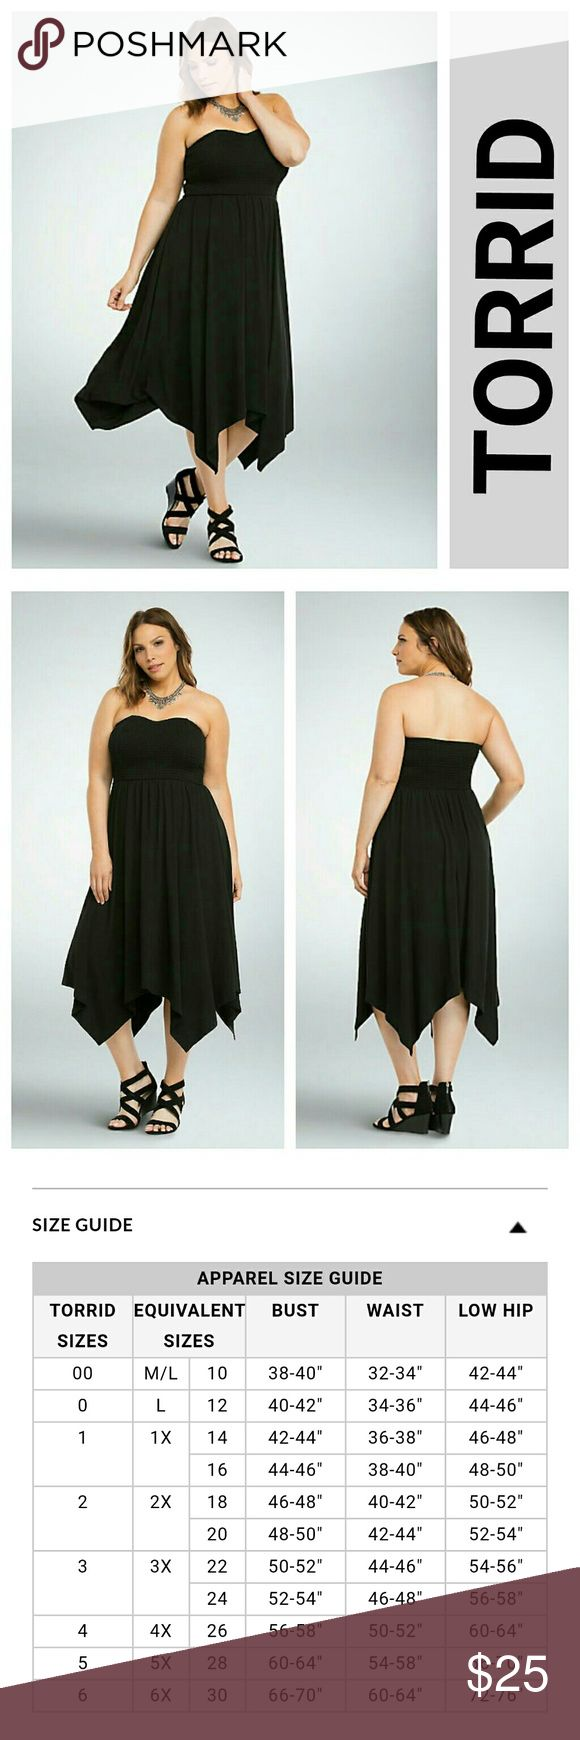 Black Smocked Handkerchief Tube Dress 10 M L Brand new  Plus Size 00 fits like women's med to Large   Summer means easing your what-to-wear worries. This tube dress does just that. The black knit handkerchief hem is the flowy skirt of your summer dreams, while the smocked tube top is all set for letting your shoulders get a major sun kiss.  ?Polyester/rayon/spandexWash cold, dry flatImported plus size dress torrid Dresses